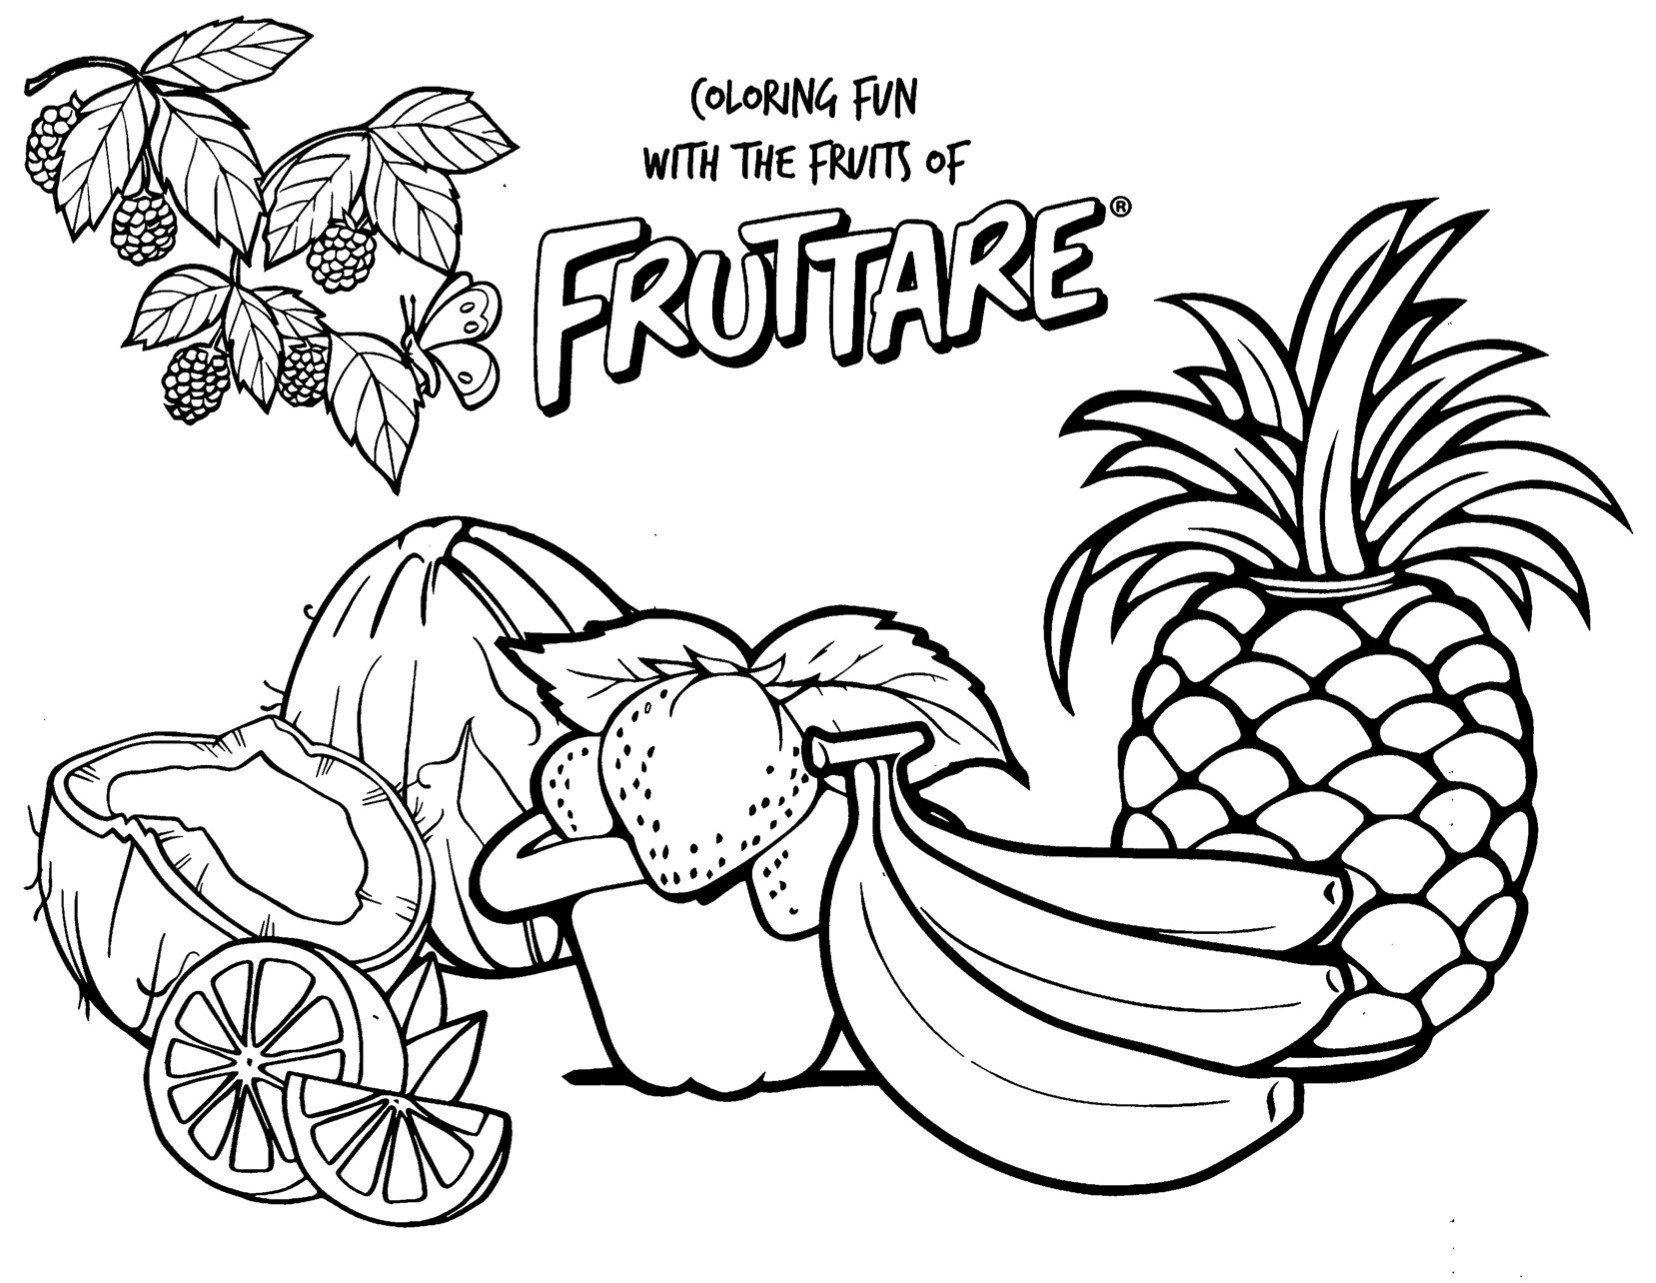 15 Free Printable Pineapple Coloring Pages